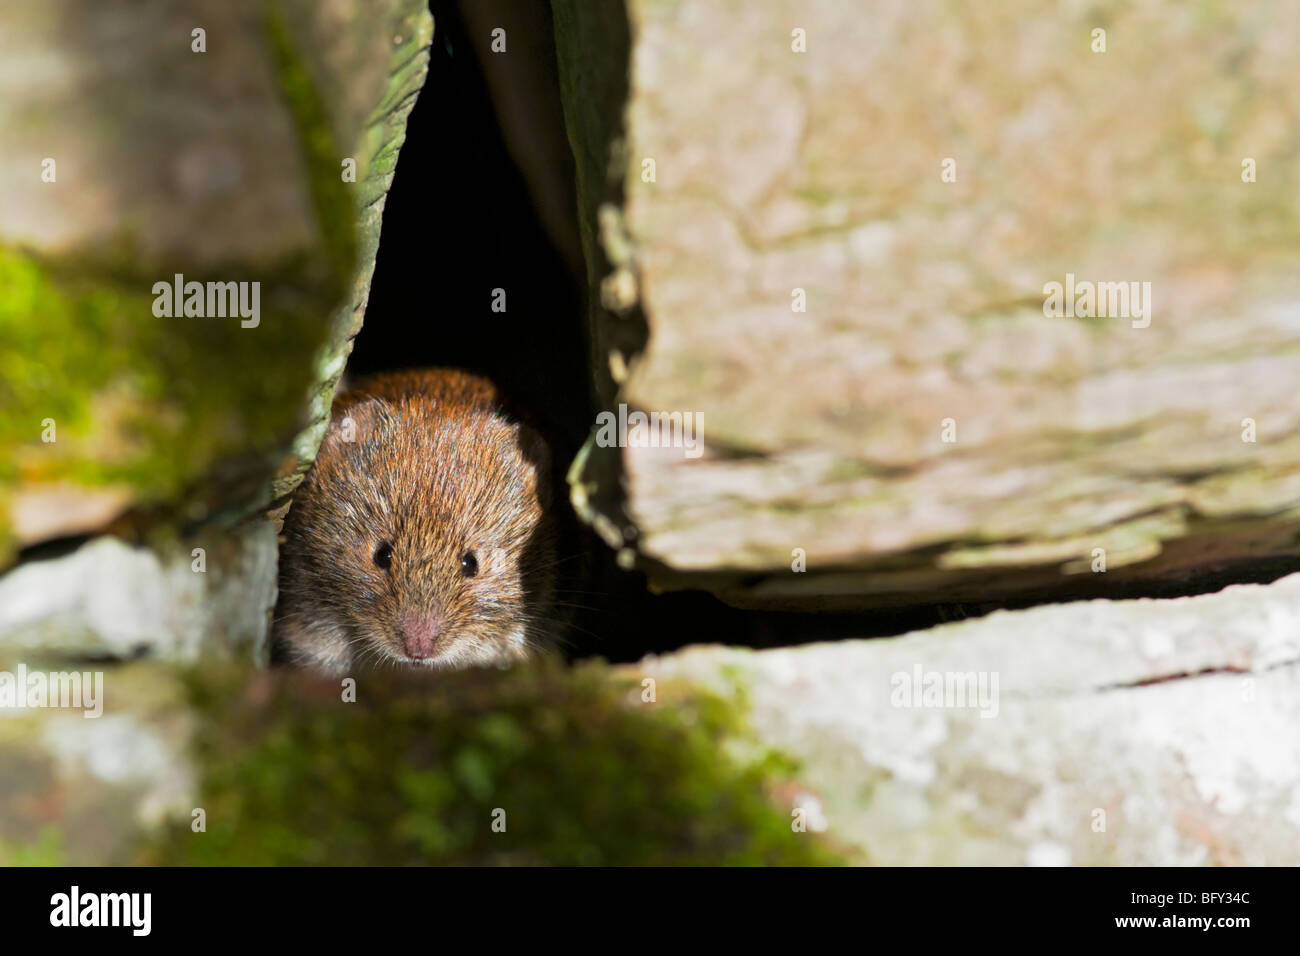 Bank vole in crevice of stone wall - Stock Image